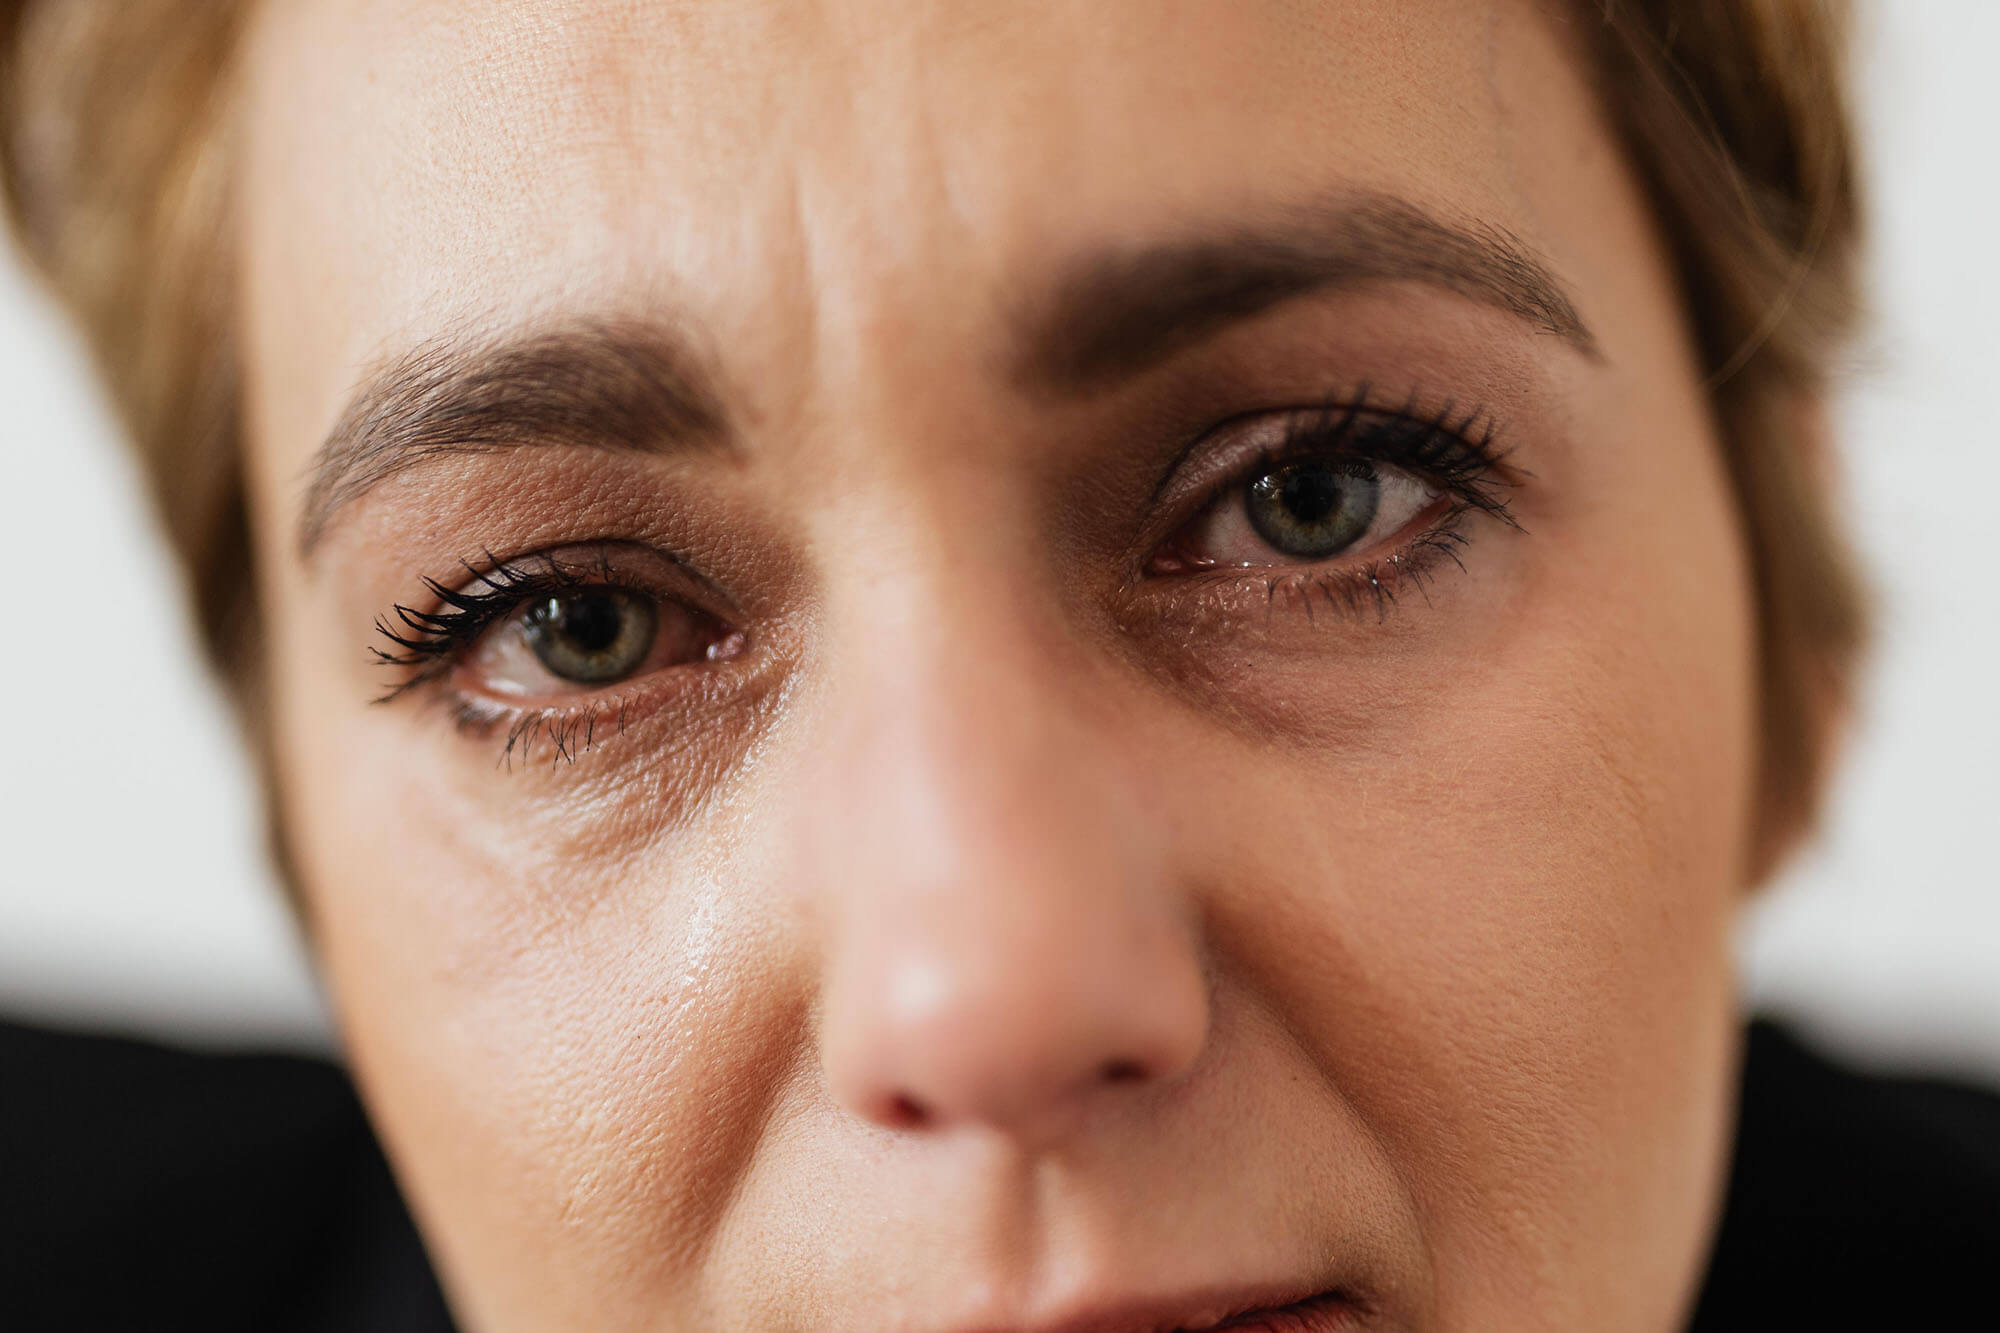 Allergic conjunctivitis Treatment, symptoms, and causes